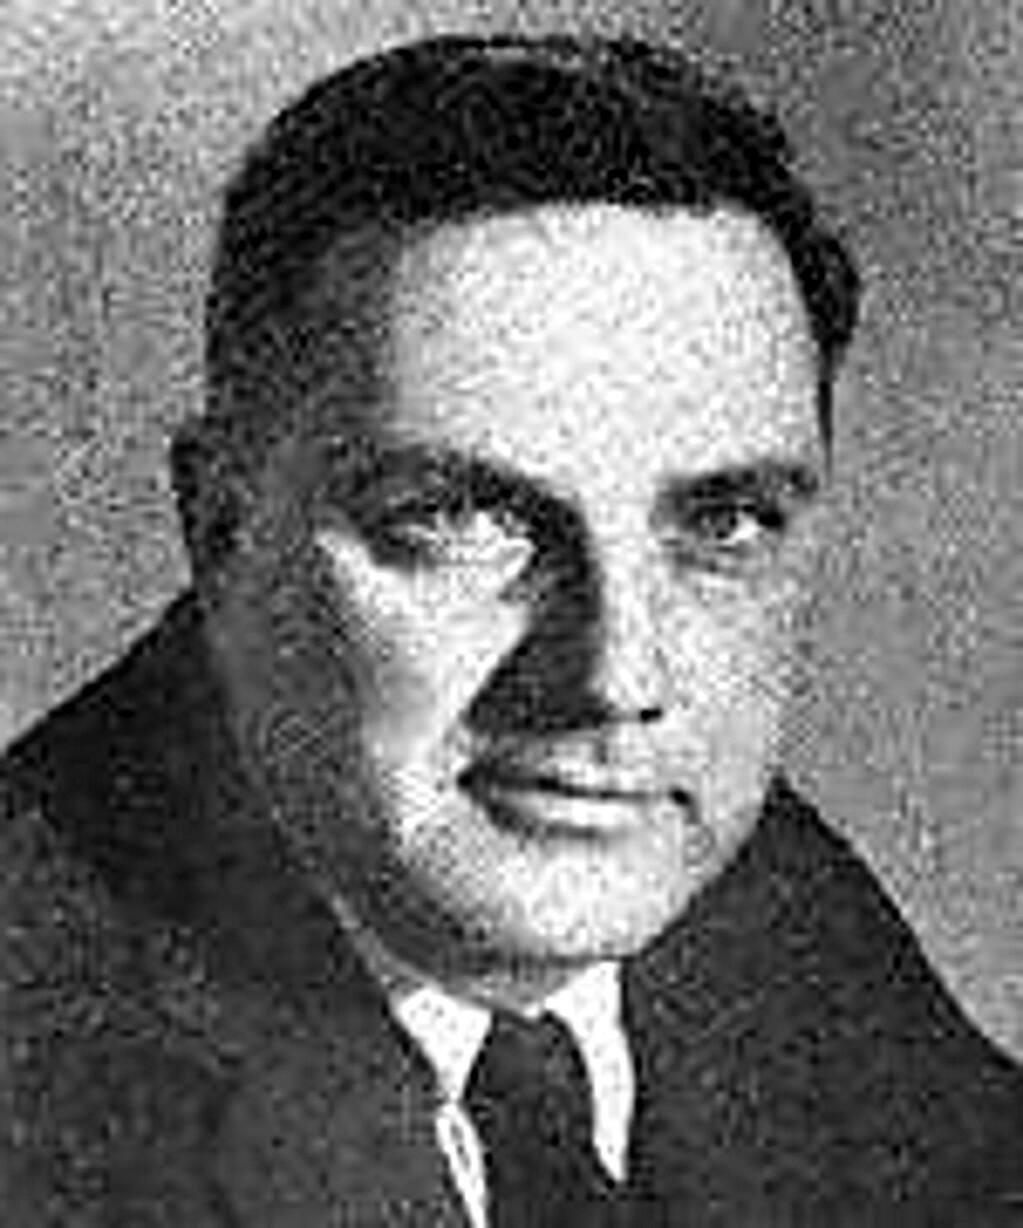 Clem Miller, c. 1960. He was also instrumental in getting Point Reyes designated a National Seashore. (Courtesy of ourcampaigns.org)